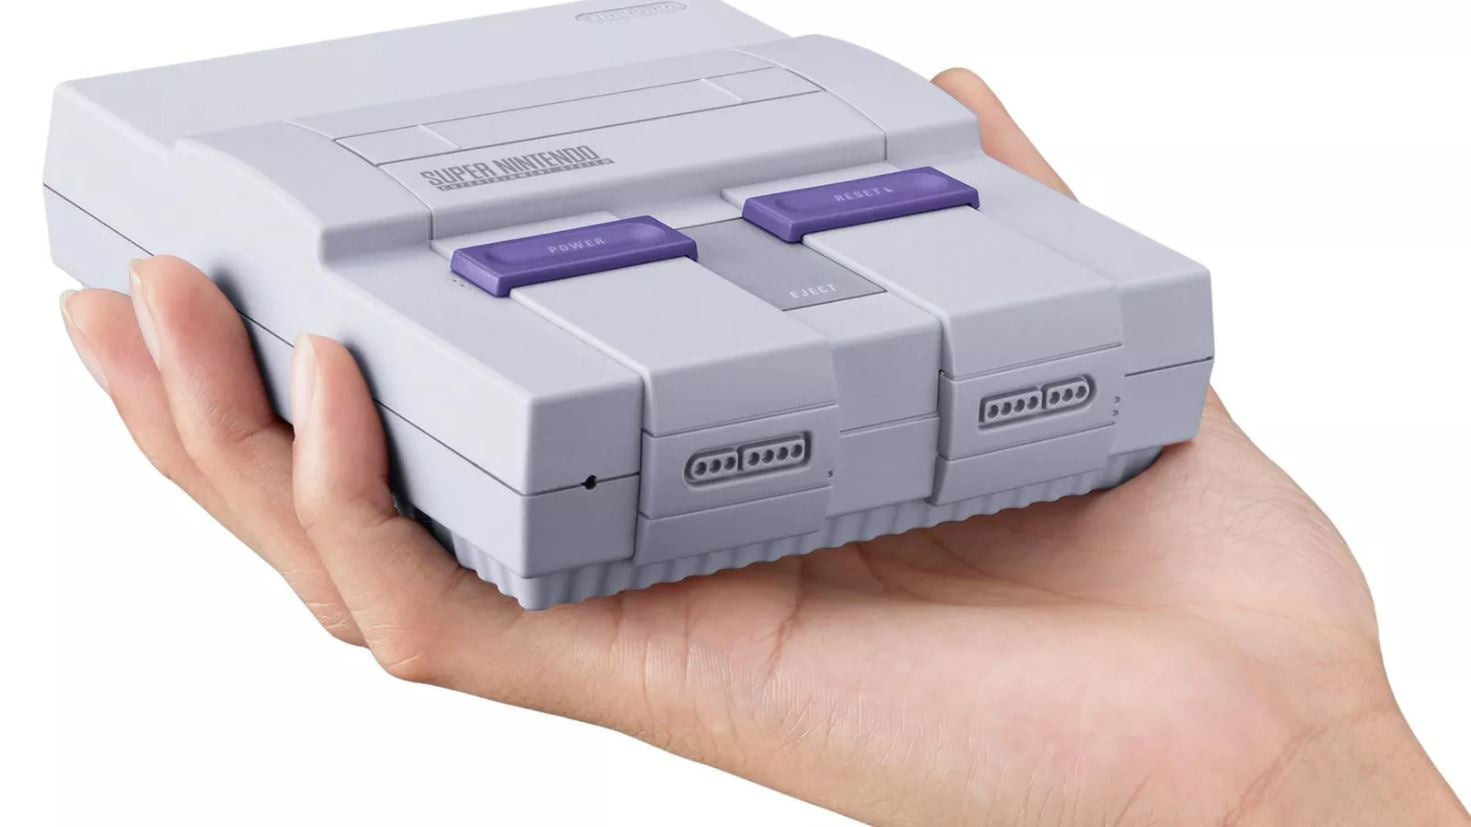 It's Already Clear That The SNES Classic Just Isn't Worth The Trouble